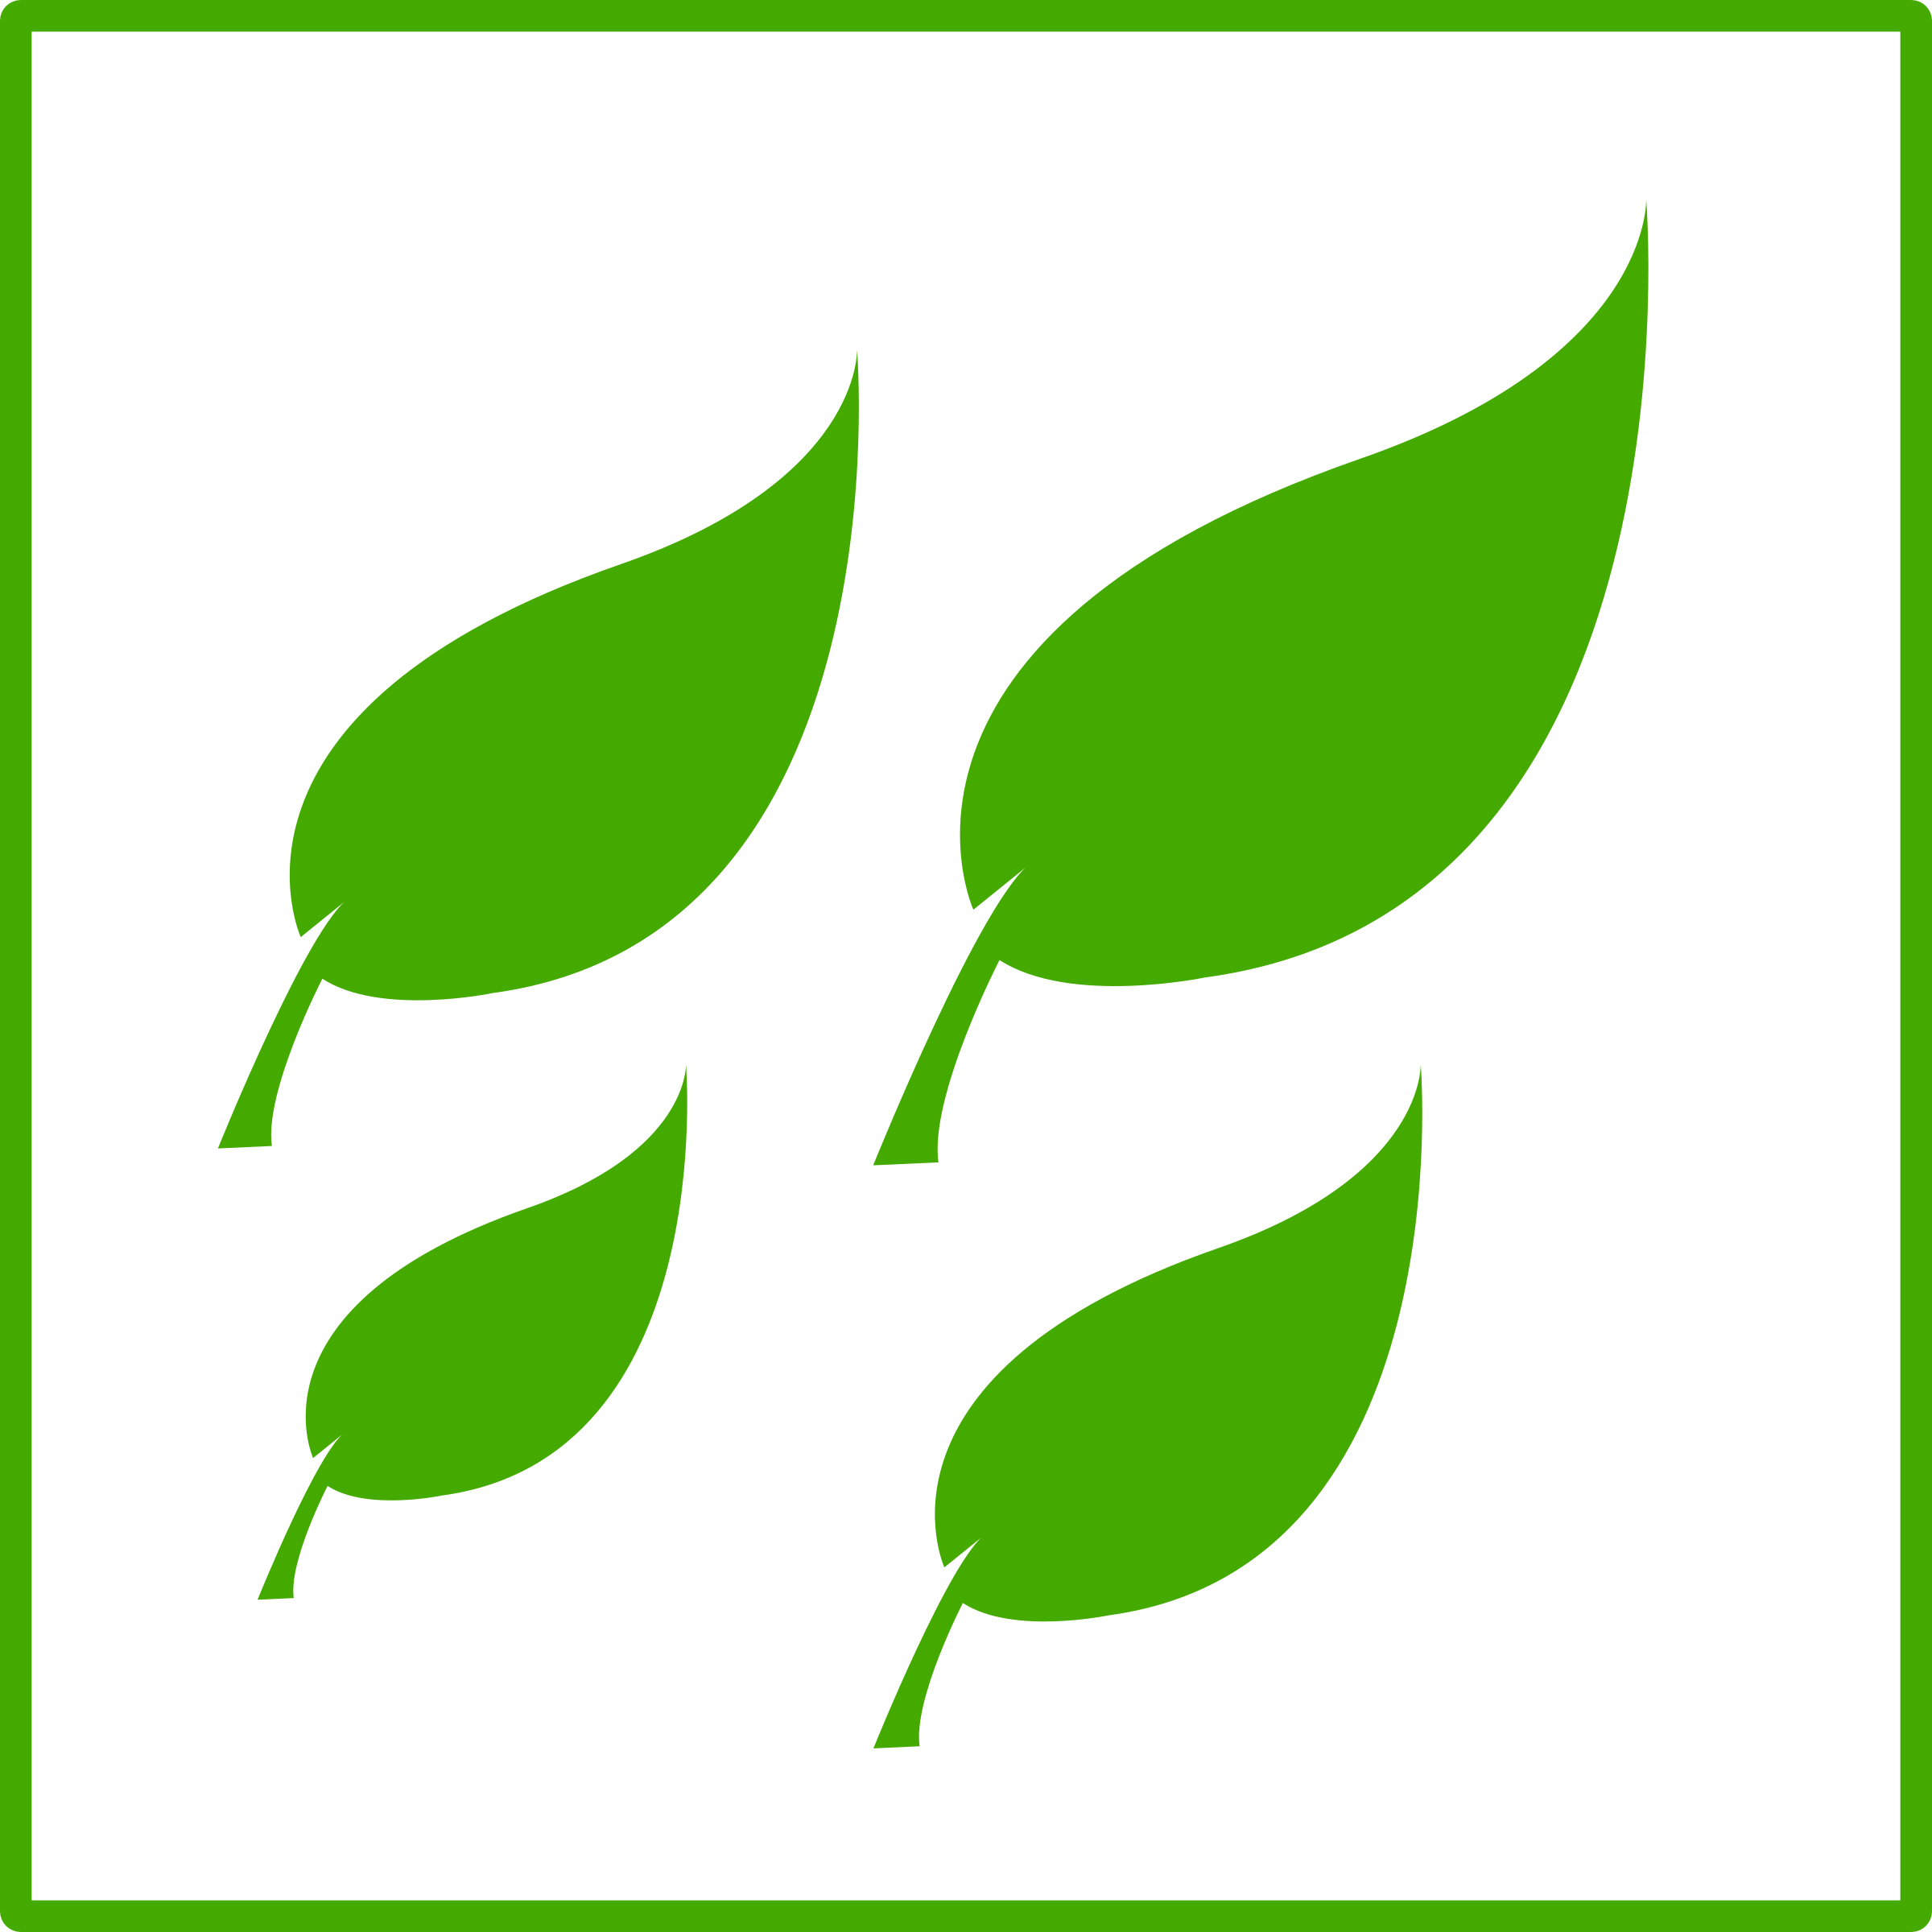 eco green leaves icon by dominiquechappard